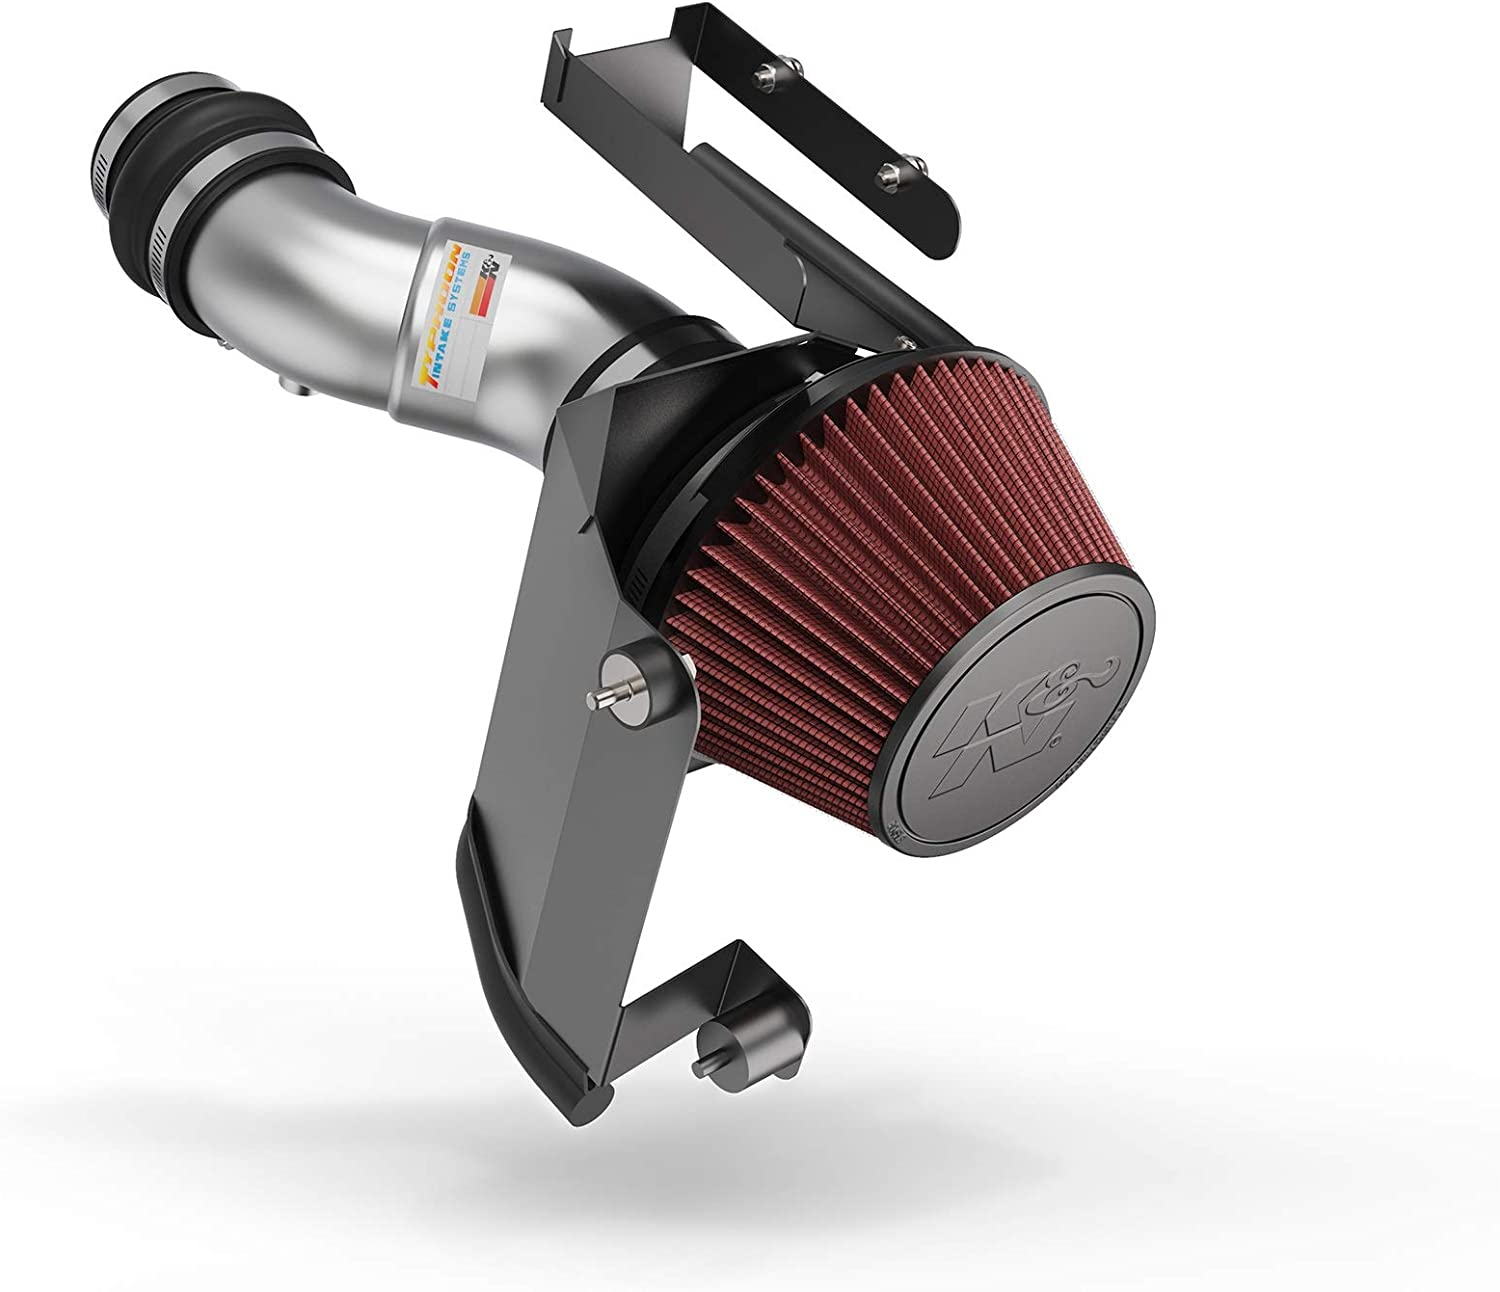 KN Cold Air Intake Price reduction Kit: Guaranteed Increas Performance Long Beach Mall High to